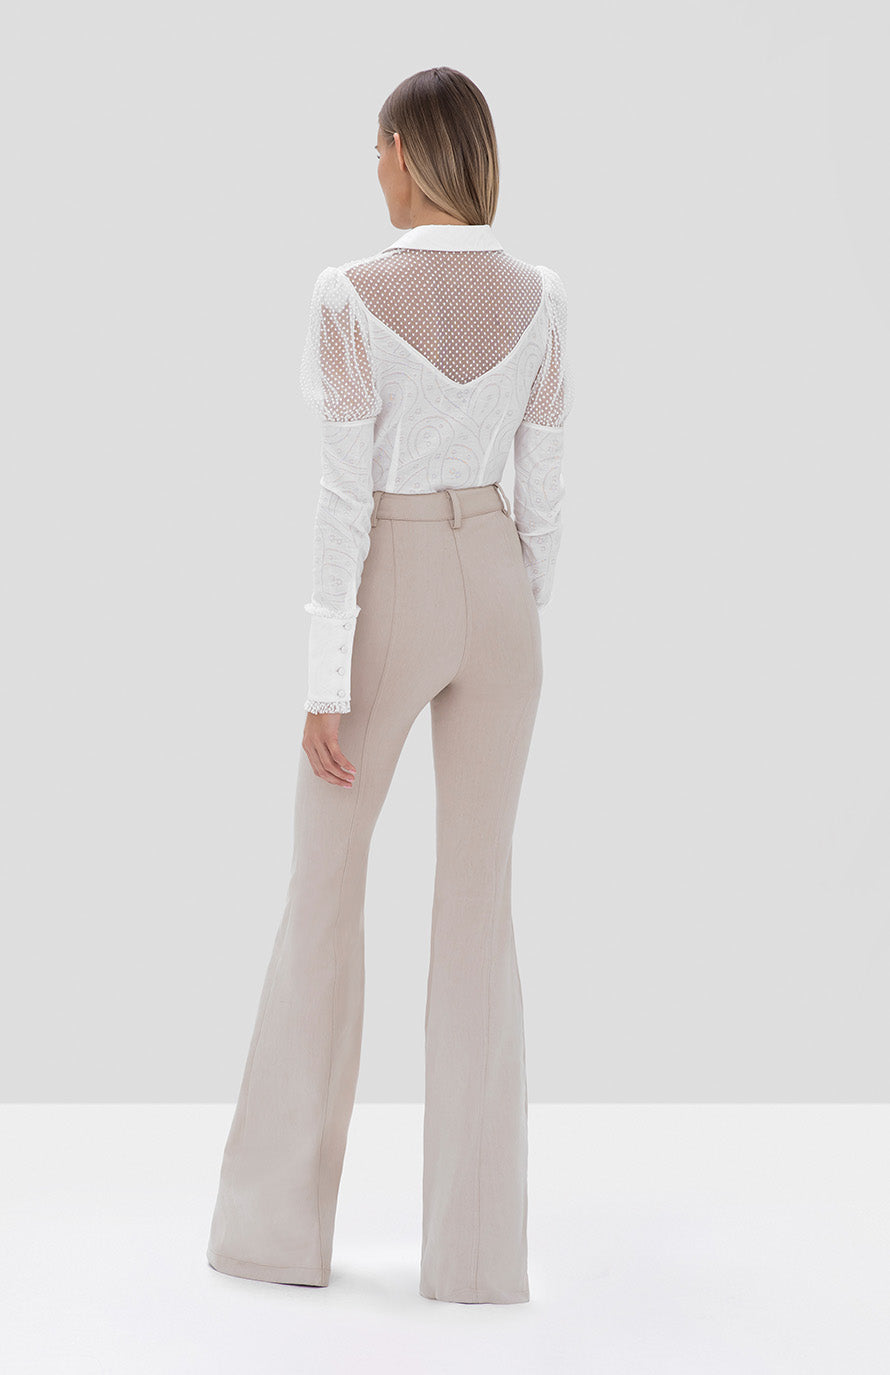 helene pant oyster denim, virginia top white - Rear View